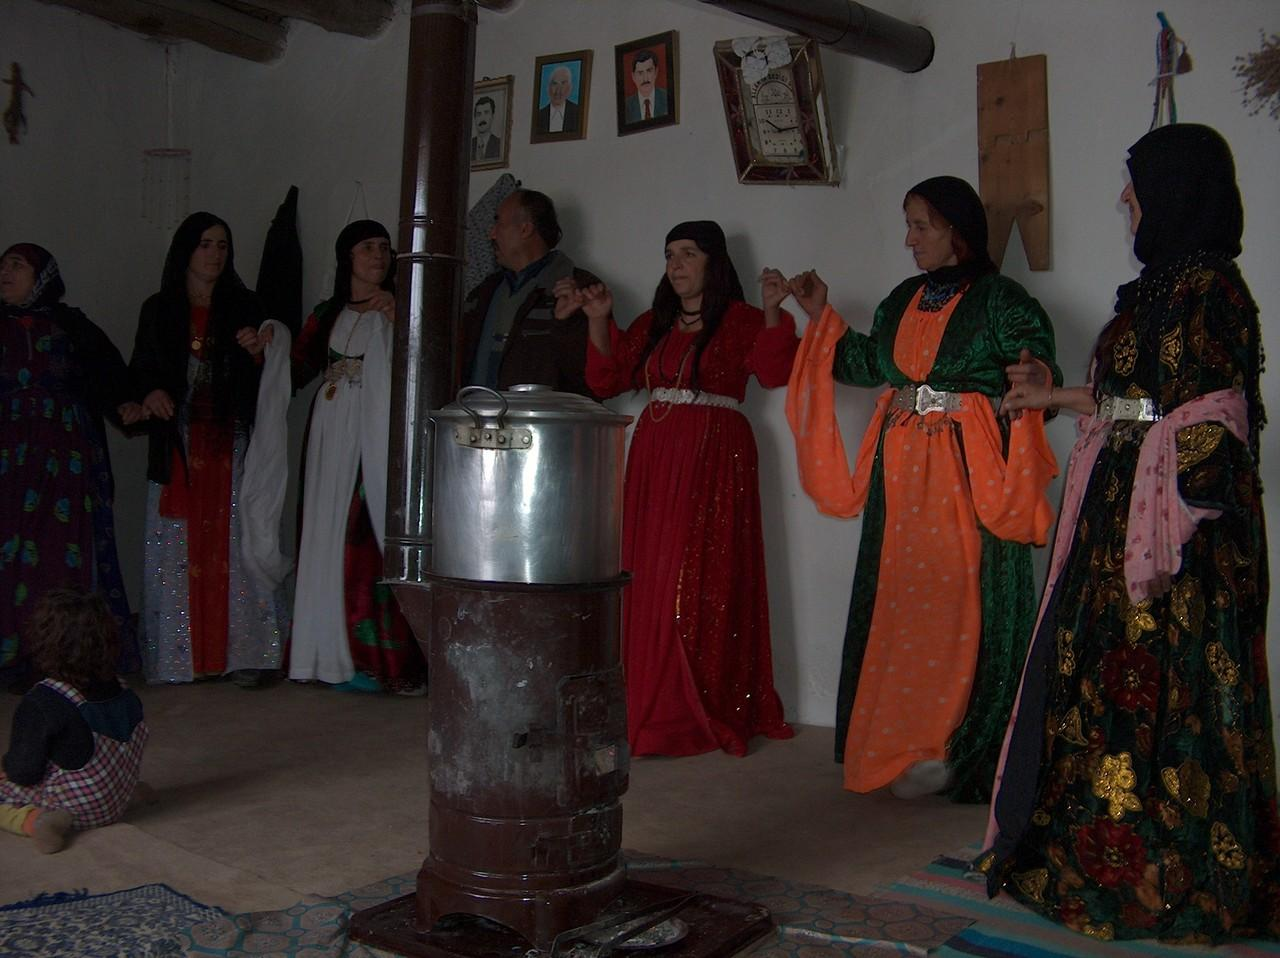 Wedding in Hakkari (December 2004)